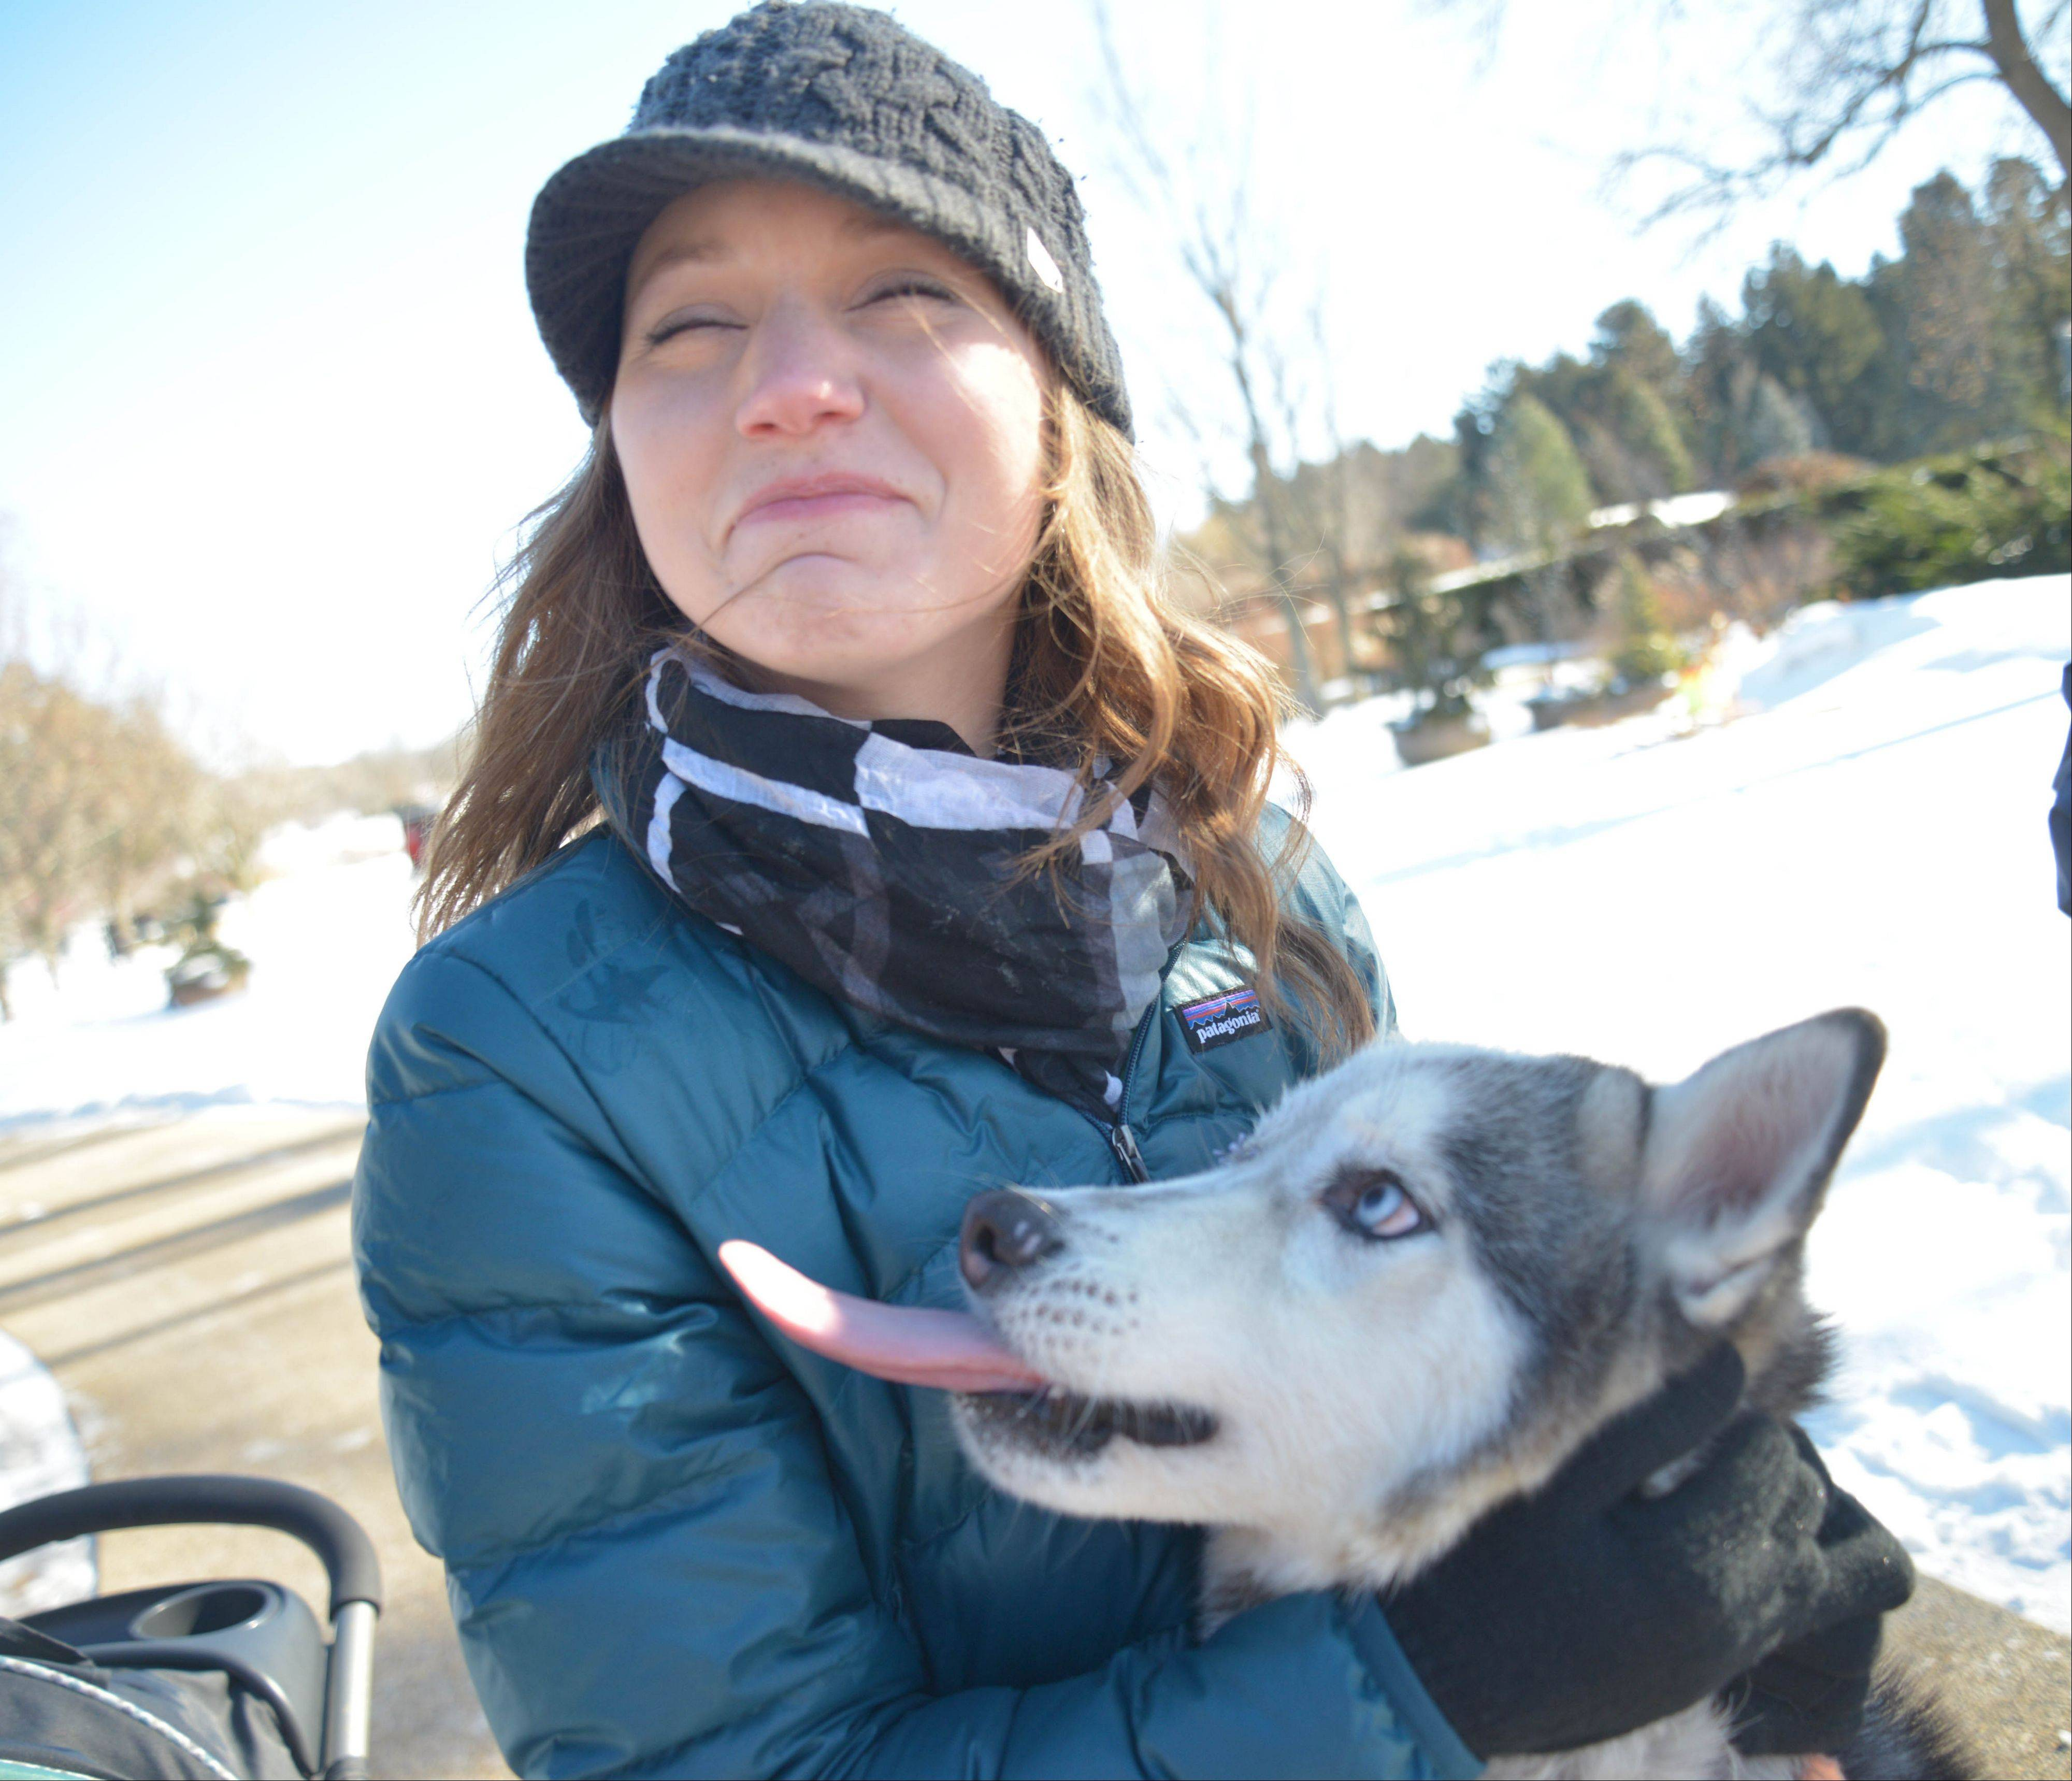 Rachael Faust, of Lombard, avoids a big wet kiss from Fozzie, one of the many dogs up for adoption at the Morton Arboretum's annual Husky Heroes program, with demonstrations of Siberian huskies pulling sleds as well as skijoring and speed demonstrations.